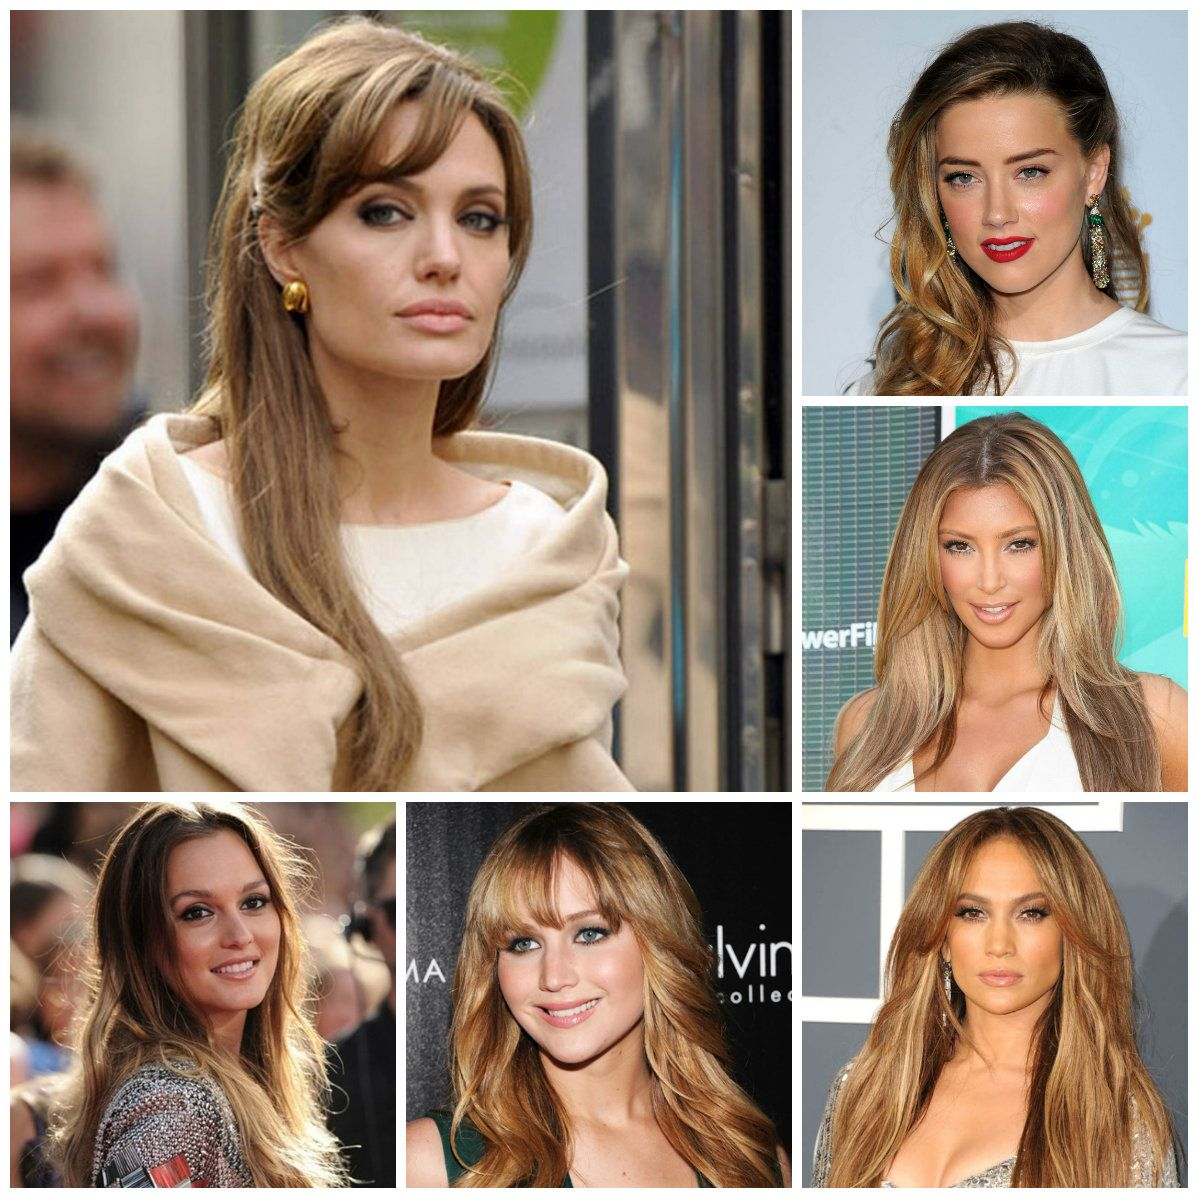 Dirty Blonde Hair Color Is The Closest Shade To Light Brown Women